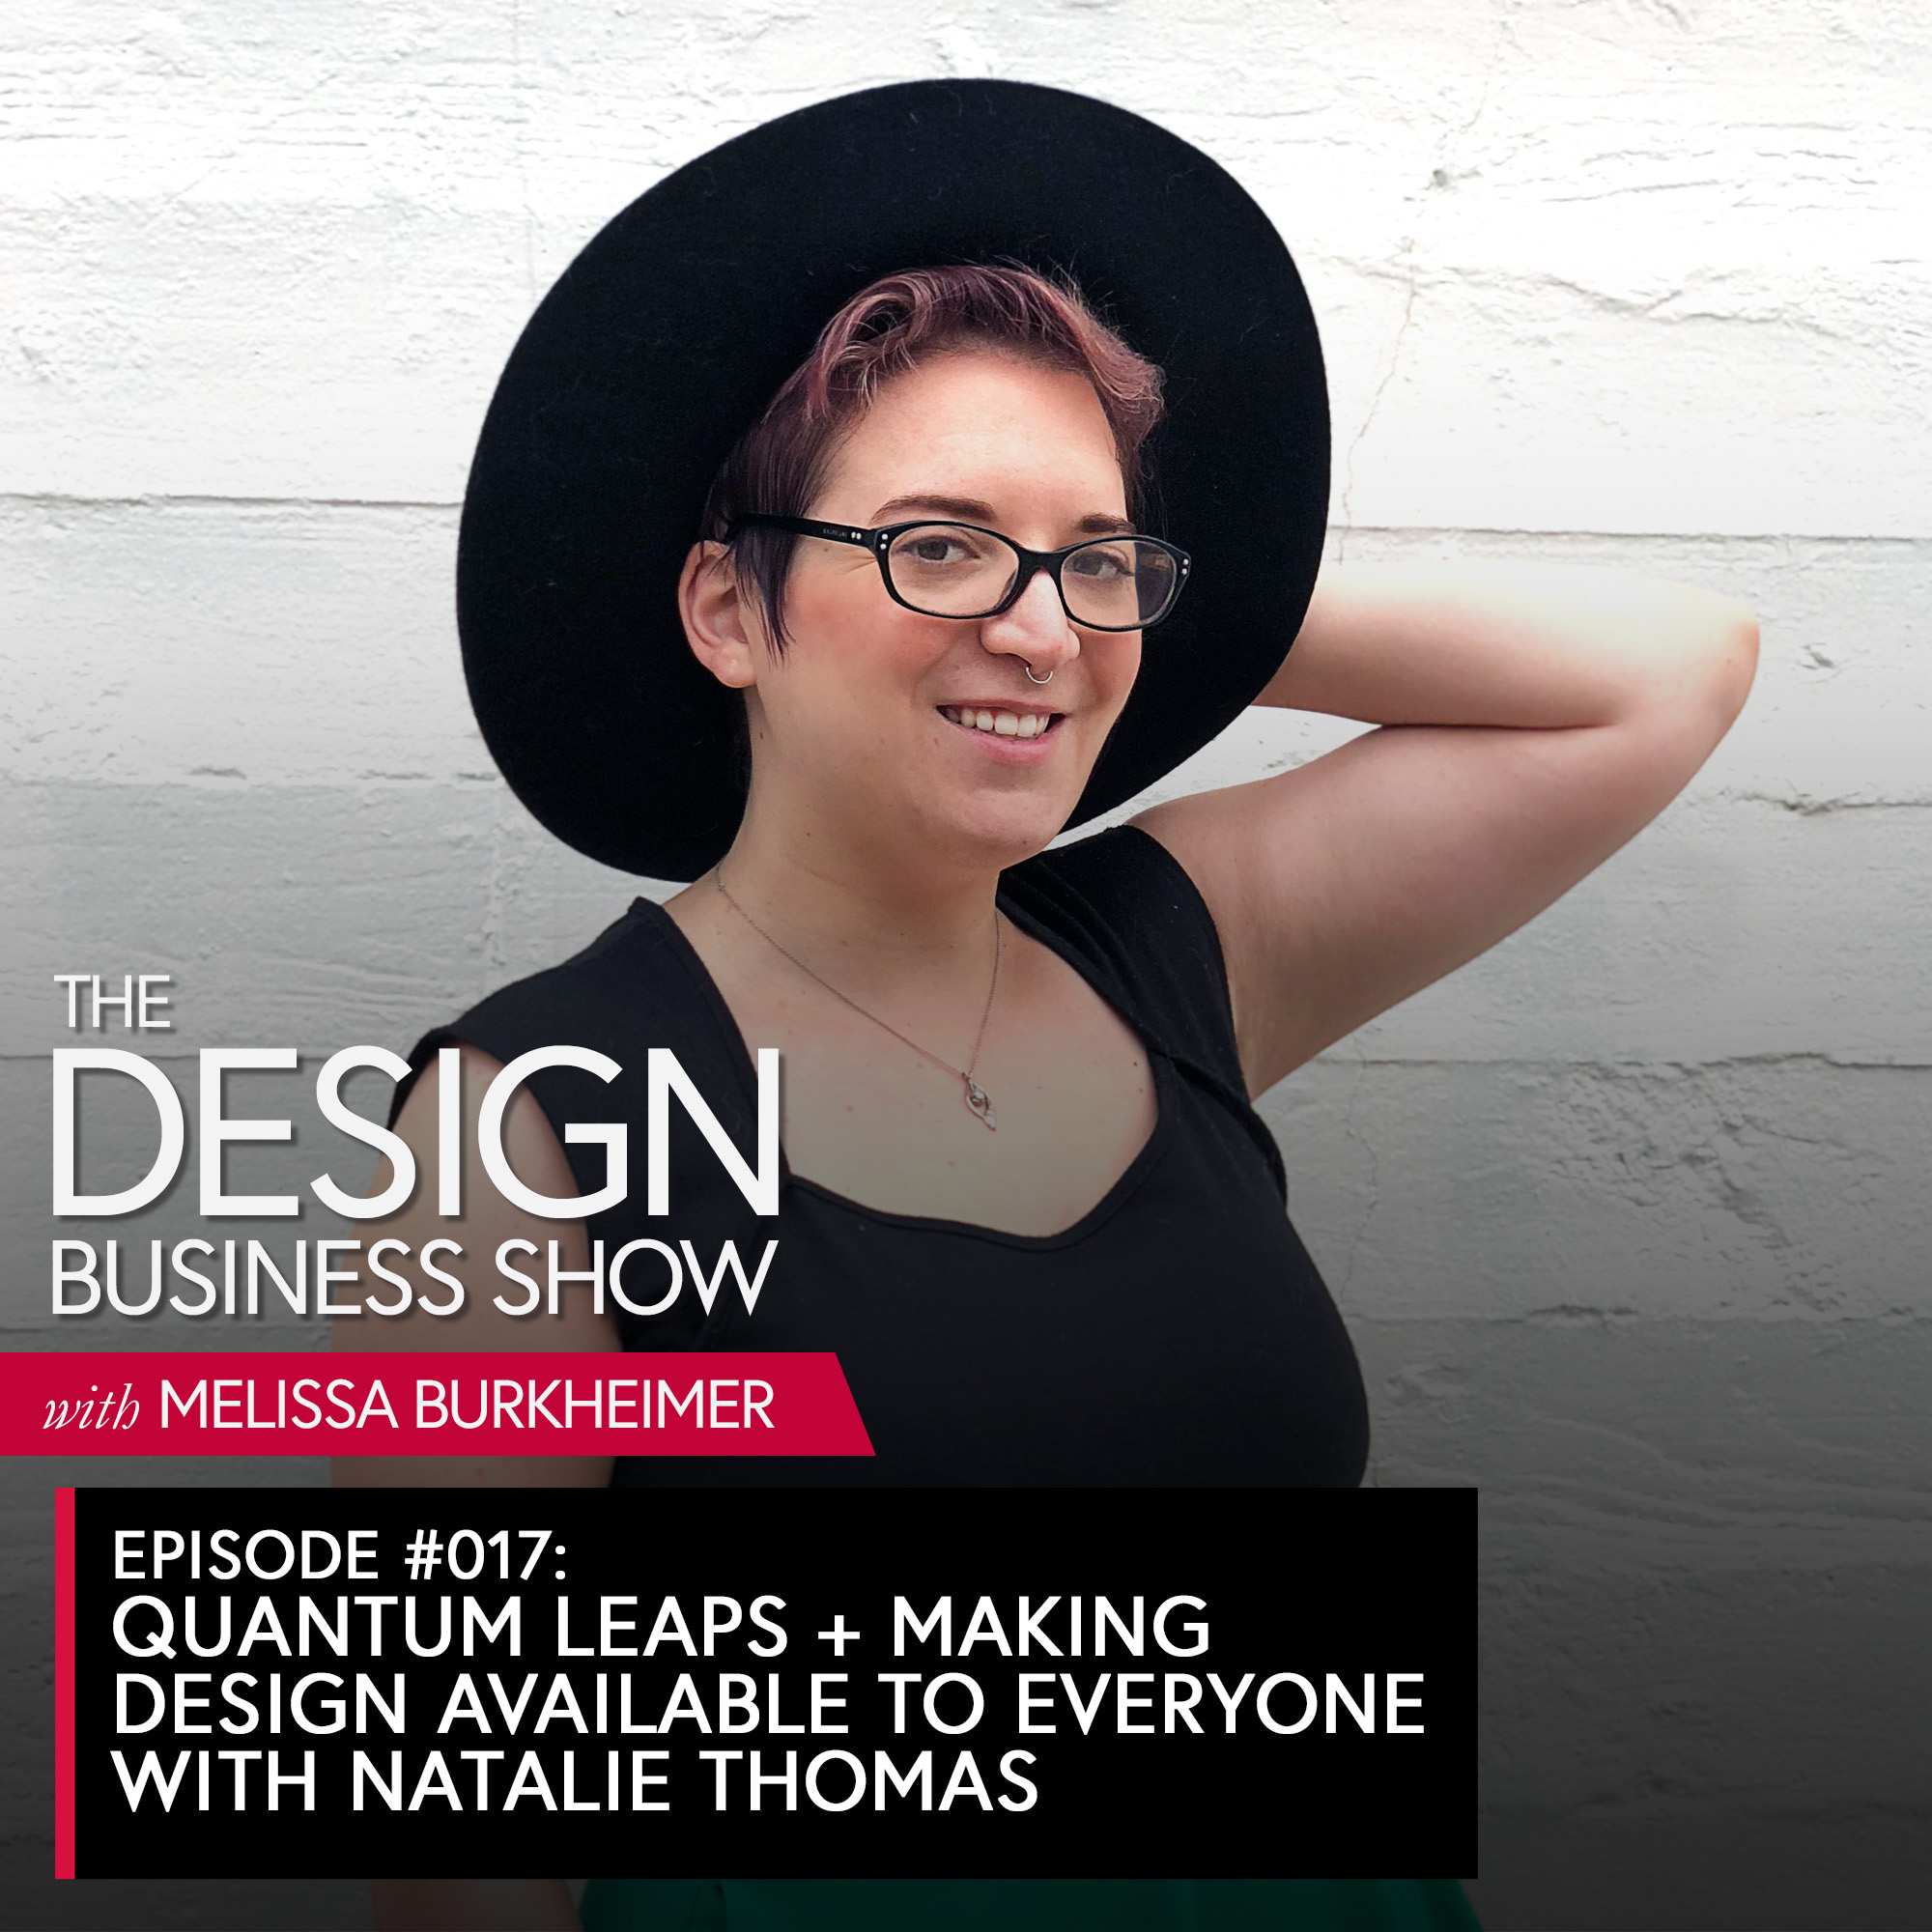 Listen to episode 17 of The Design Business Show with one of my favorite students, Natalie Thomas, about her quantum leaps and making design available to everyone!